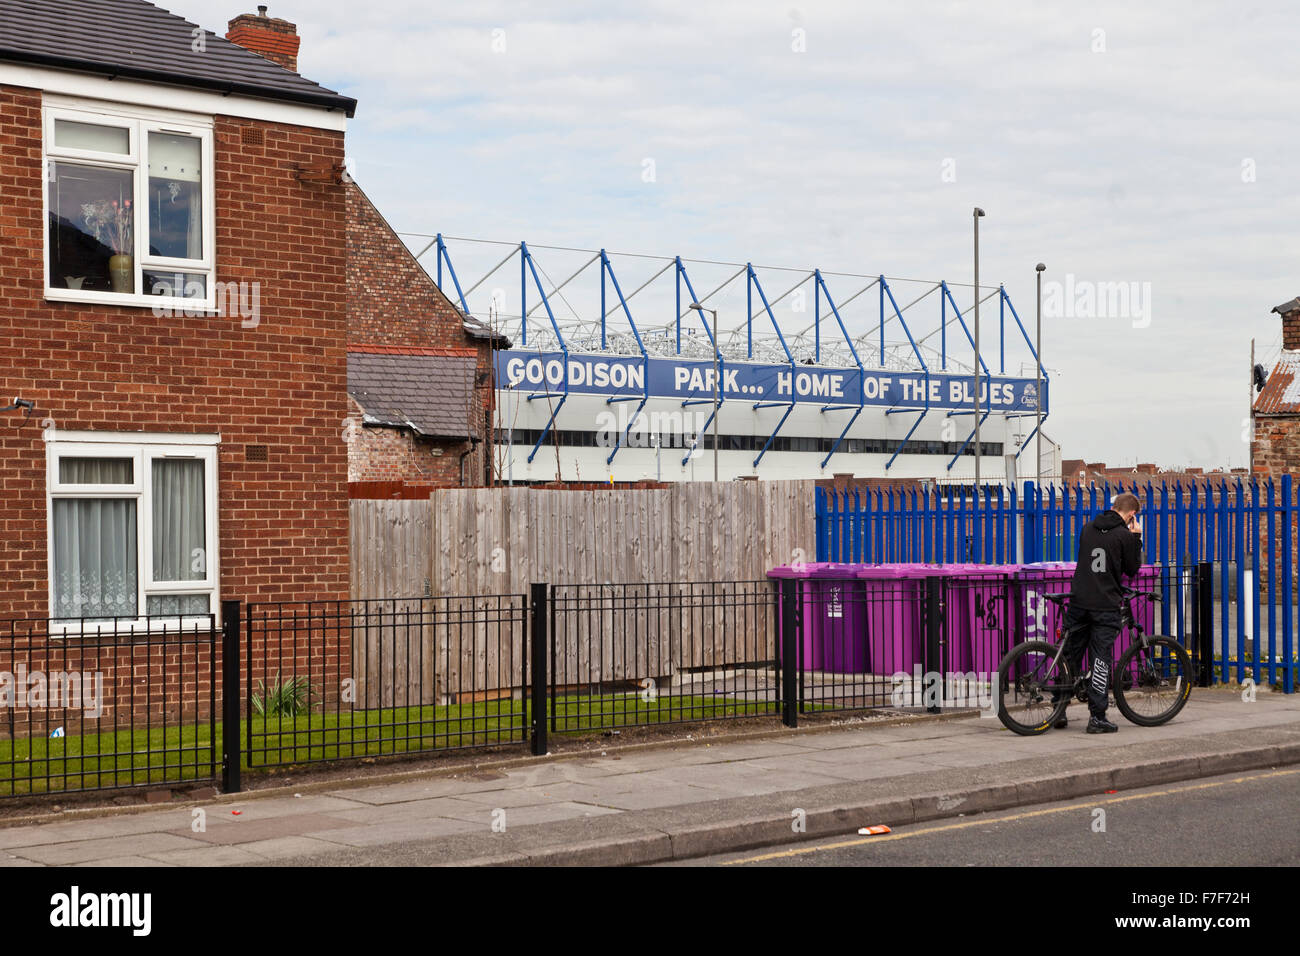 Documentary pictures Everton FC, Goodison to Liverpool FC, Anfield, Liverpool, England Stock Photo